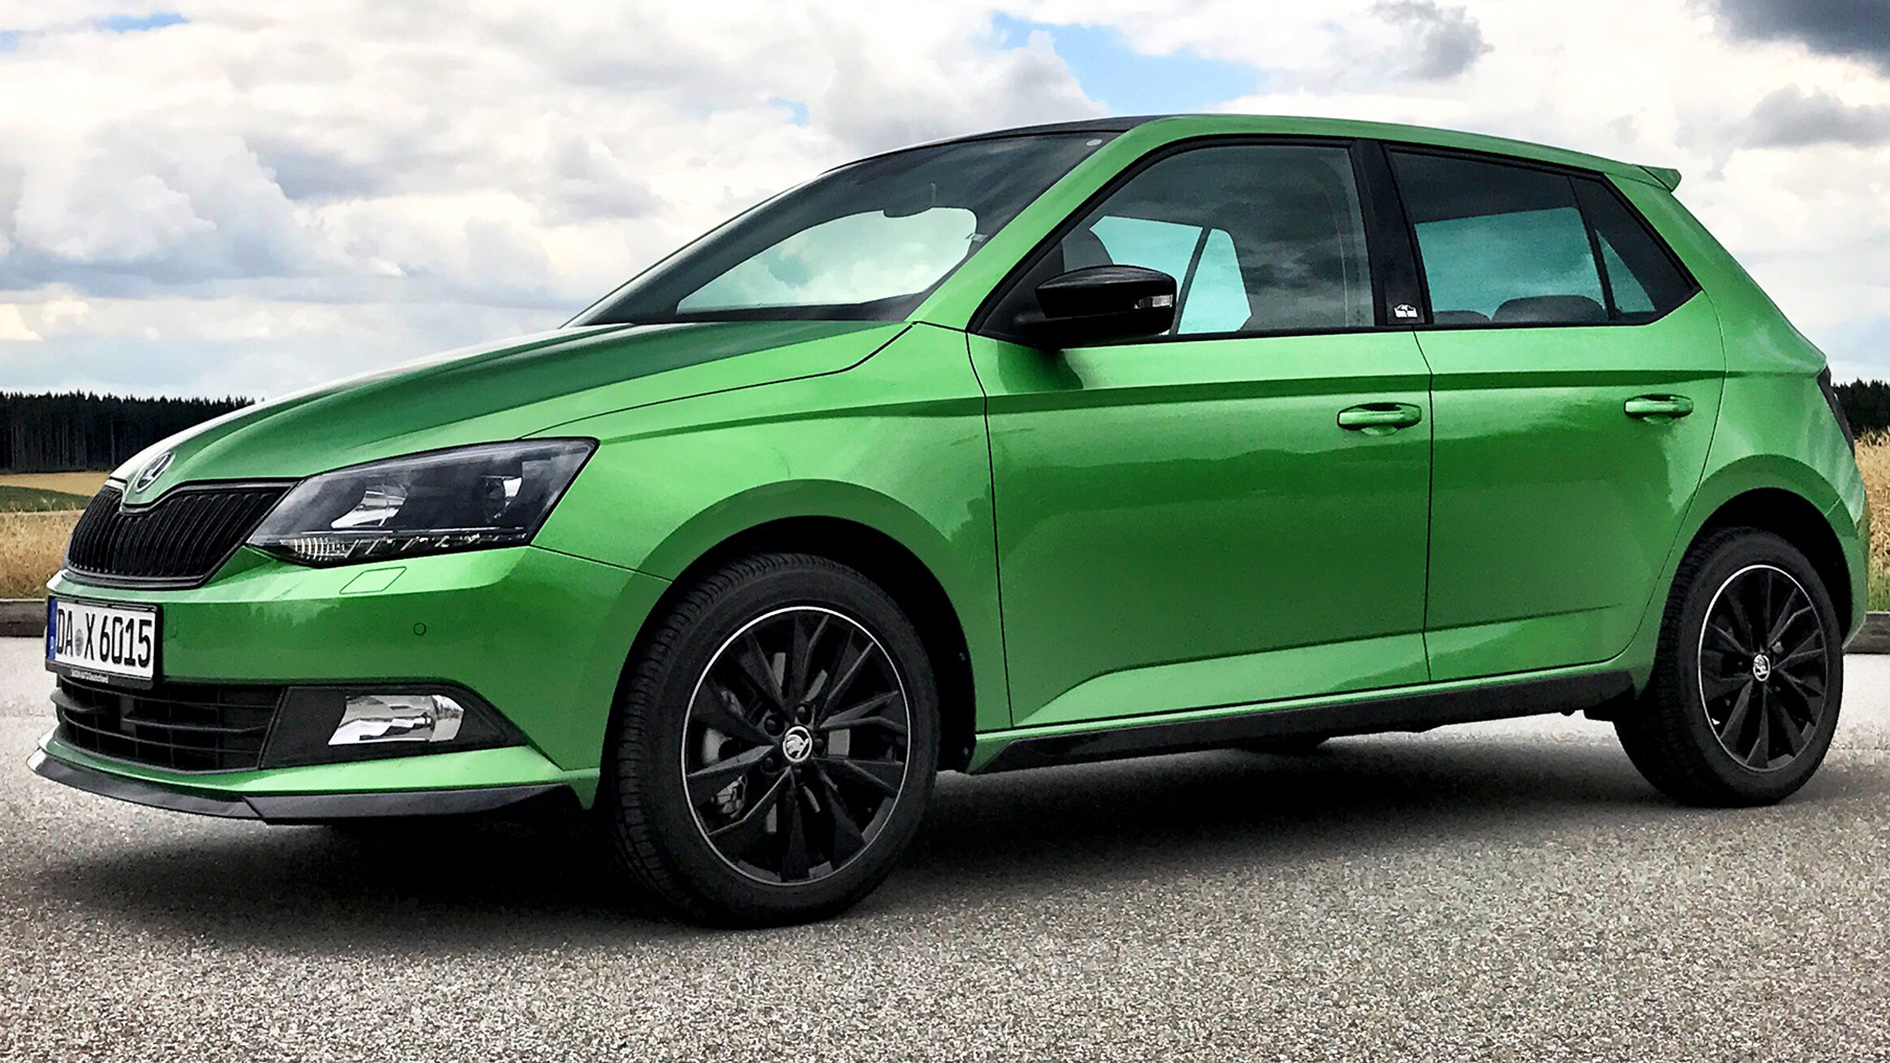 skoda fabia monte carlo test driving the 1 4 l tdi english free car. Black Bedroom Furniture Sets. Home Design Ideas